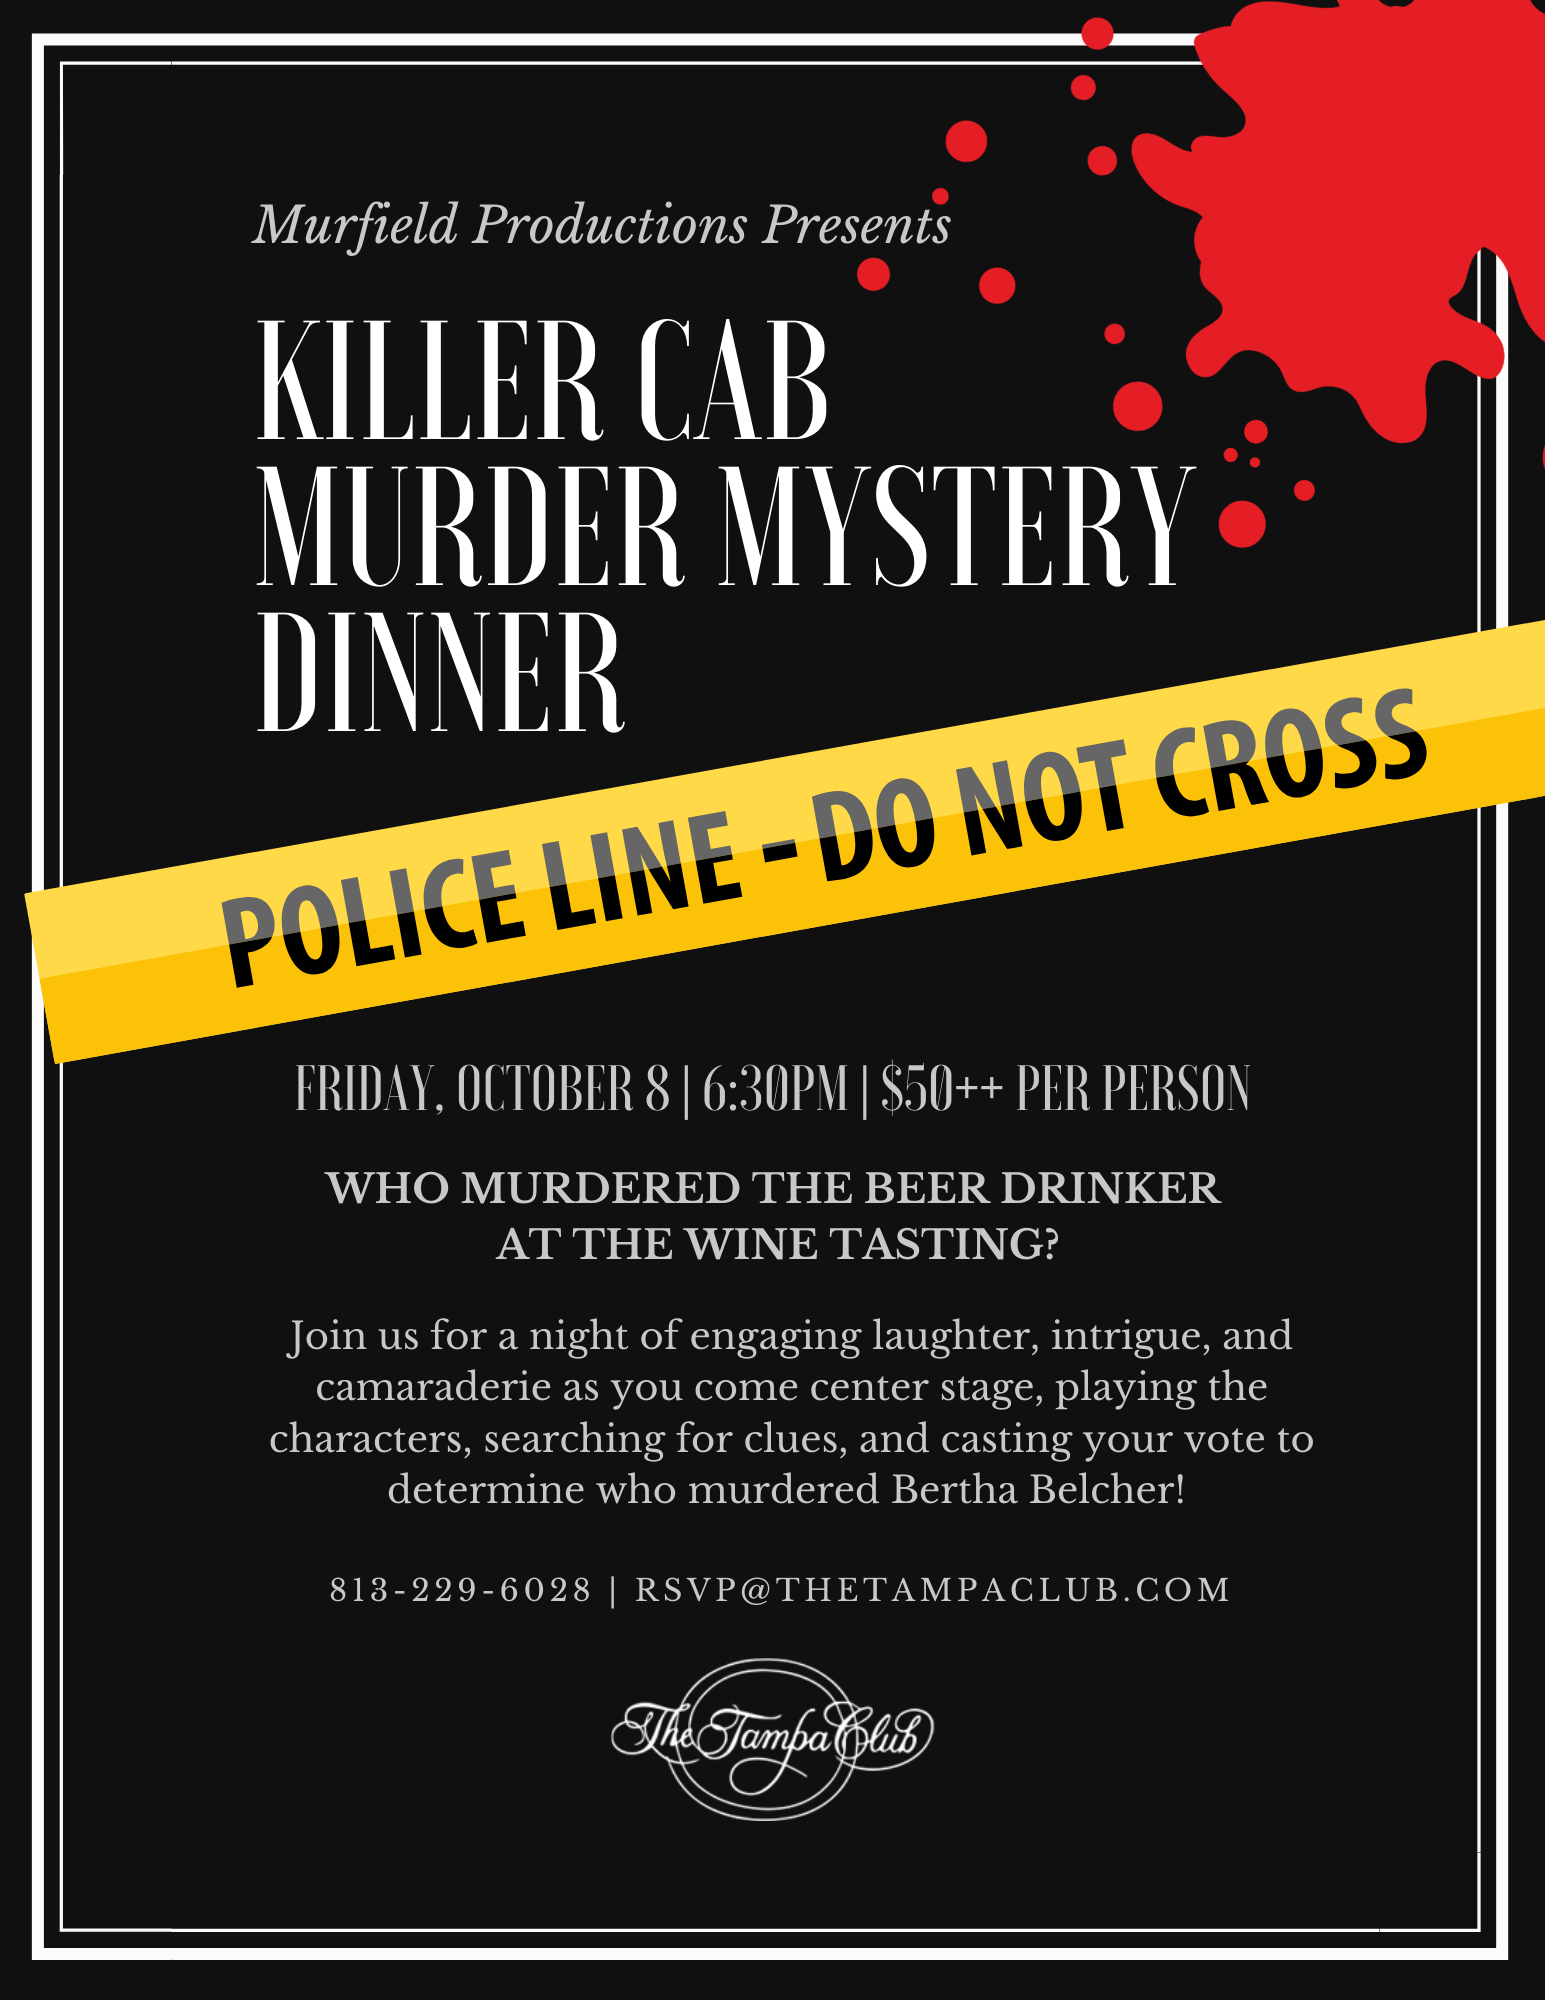 Murder Mystery Theater presented by Loren Murfield to be performed October 8, 2021 at the Tampa Club.